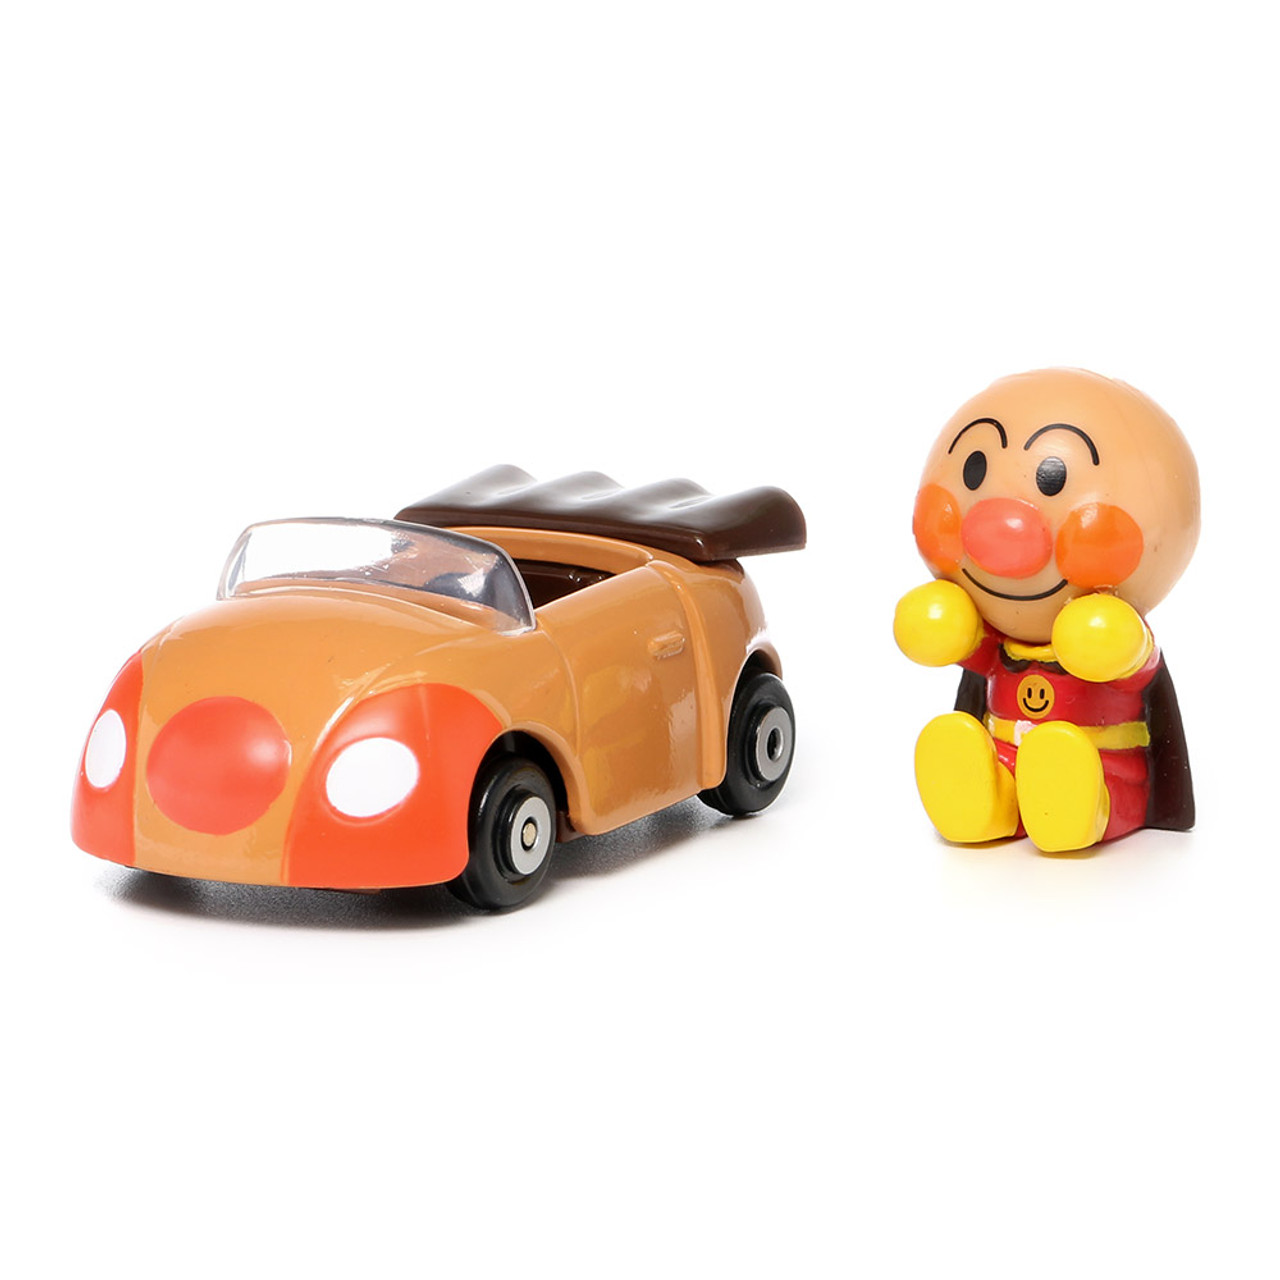 Sega Toys Anpanman Museum Go Go Mini Vehicle Carry Hero - Anpanman Roadster ( Roadster Front )